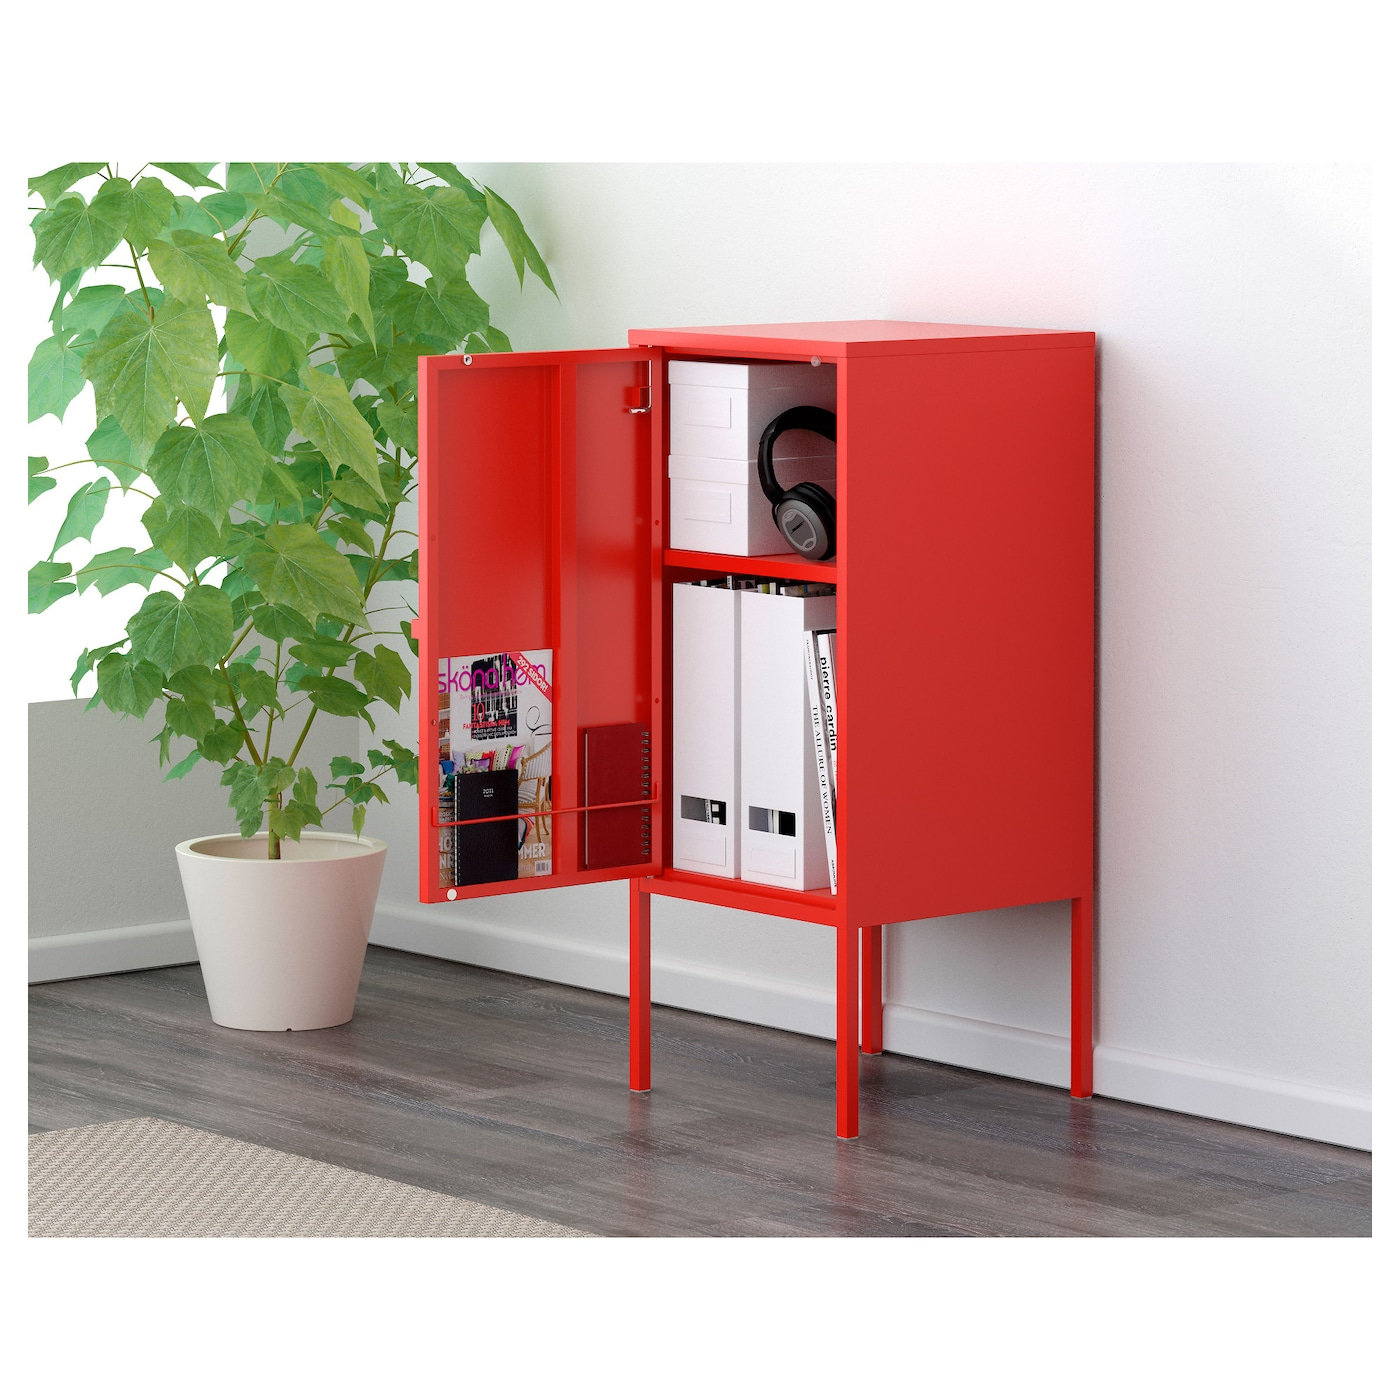 lixhult cabinet metal red 35x60 cm ikea. Black Bedroom Furniture Sets. Home Design Ideas